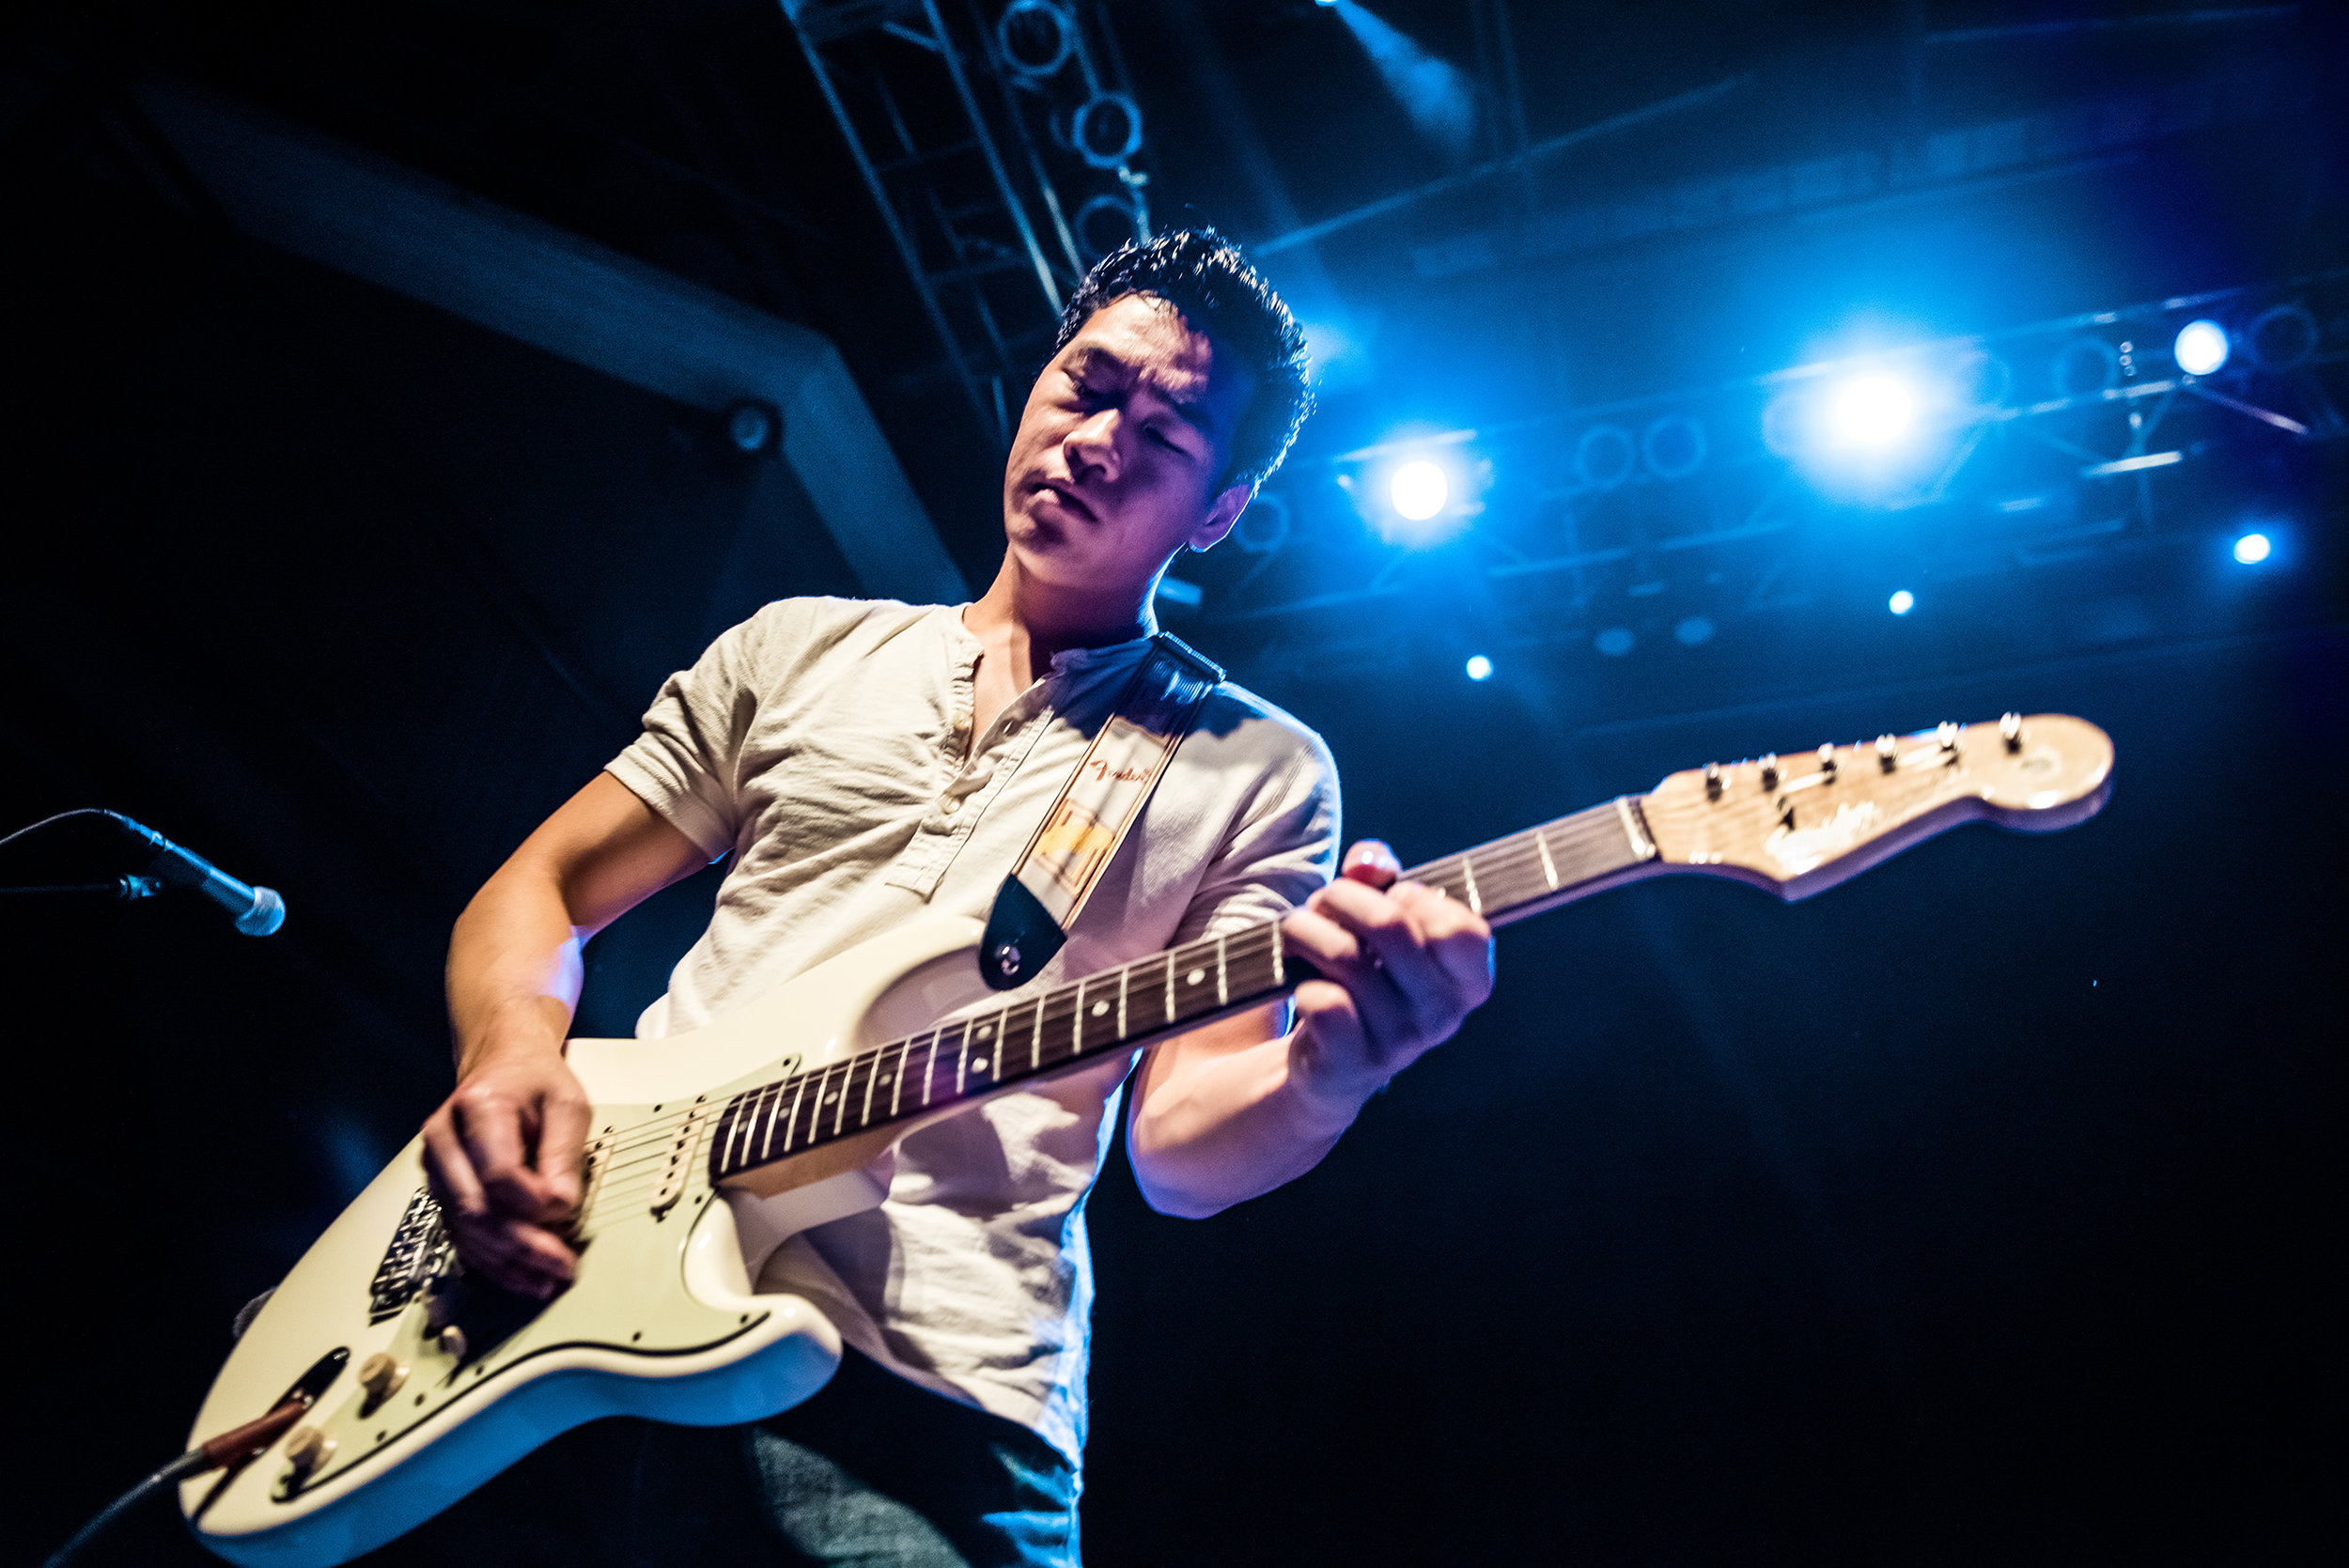 Skyline Hotel - 930 Club - Jeff Lee 4.jpg